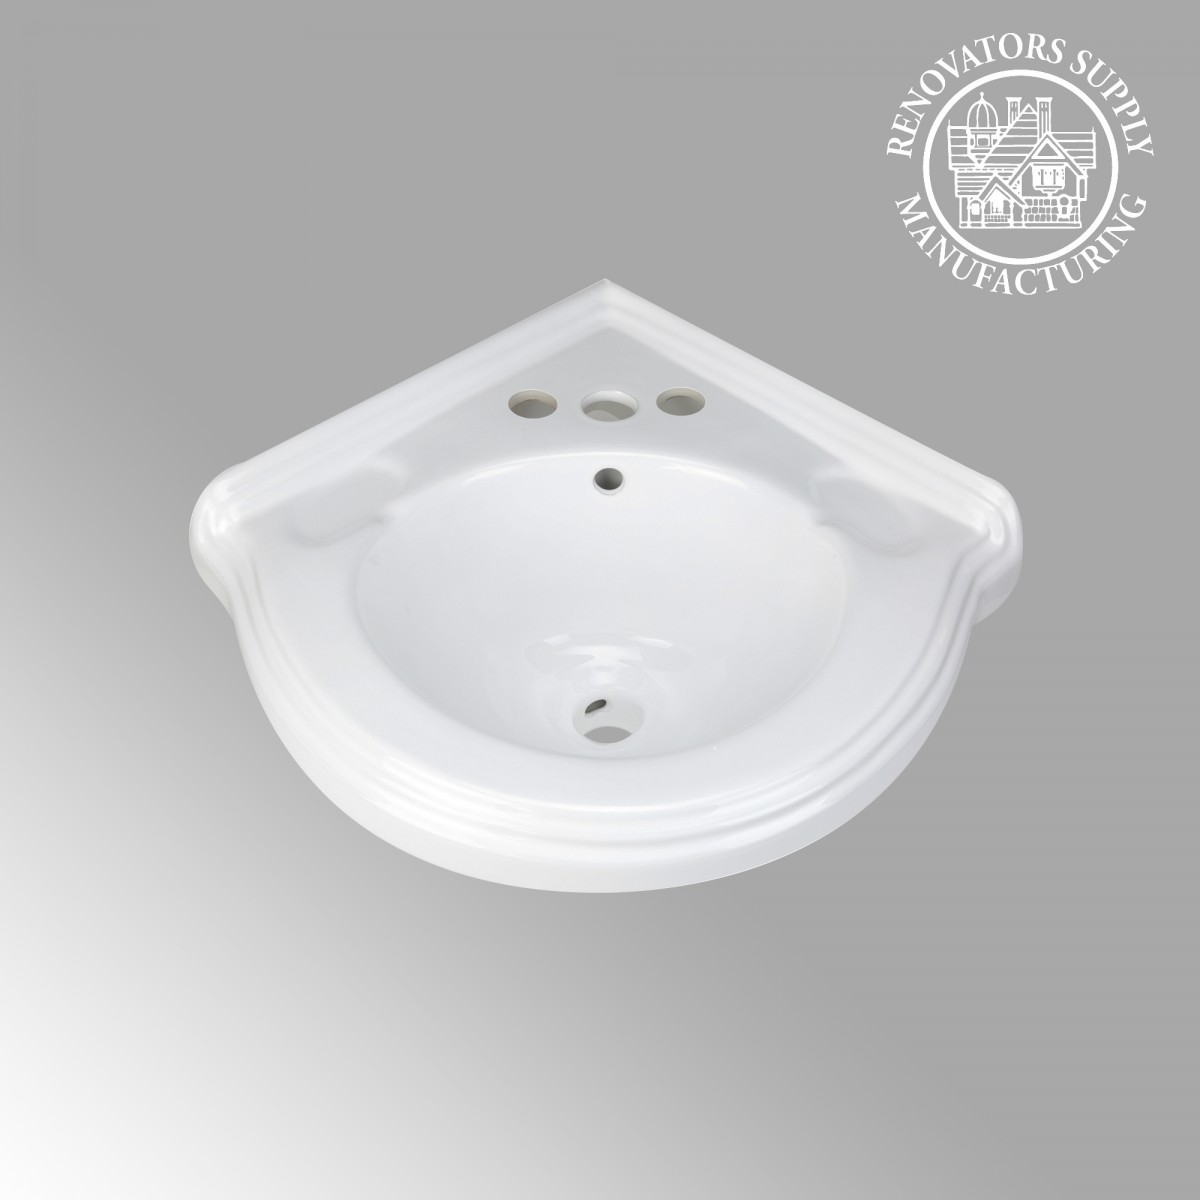 Small wall mounted bathroom sinks - Corner Wall Mount Small Bathroom Sink White Ceramic Vitreous China Portsmouth